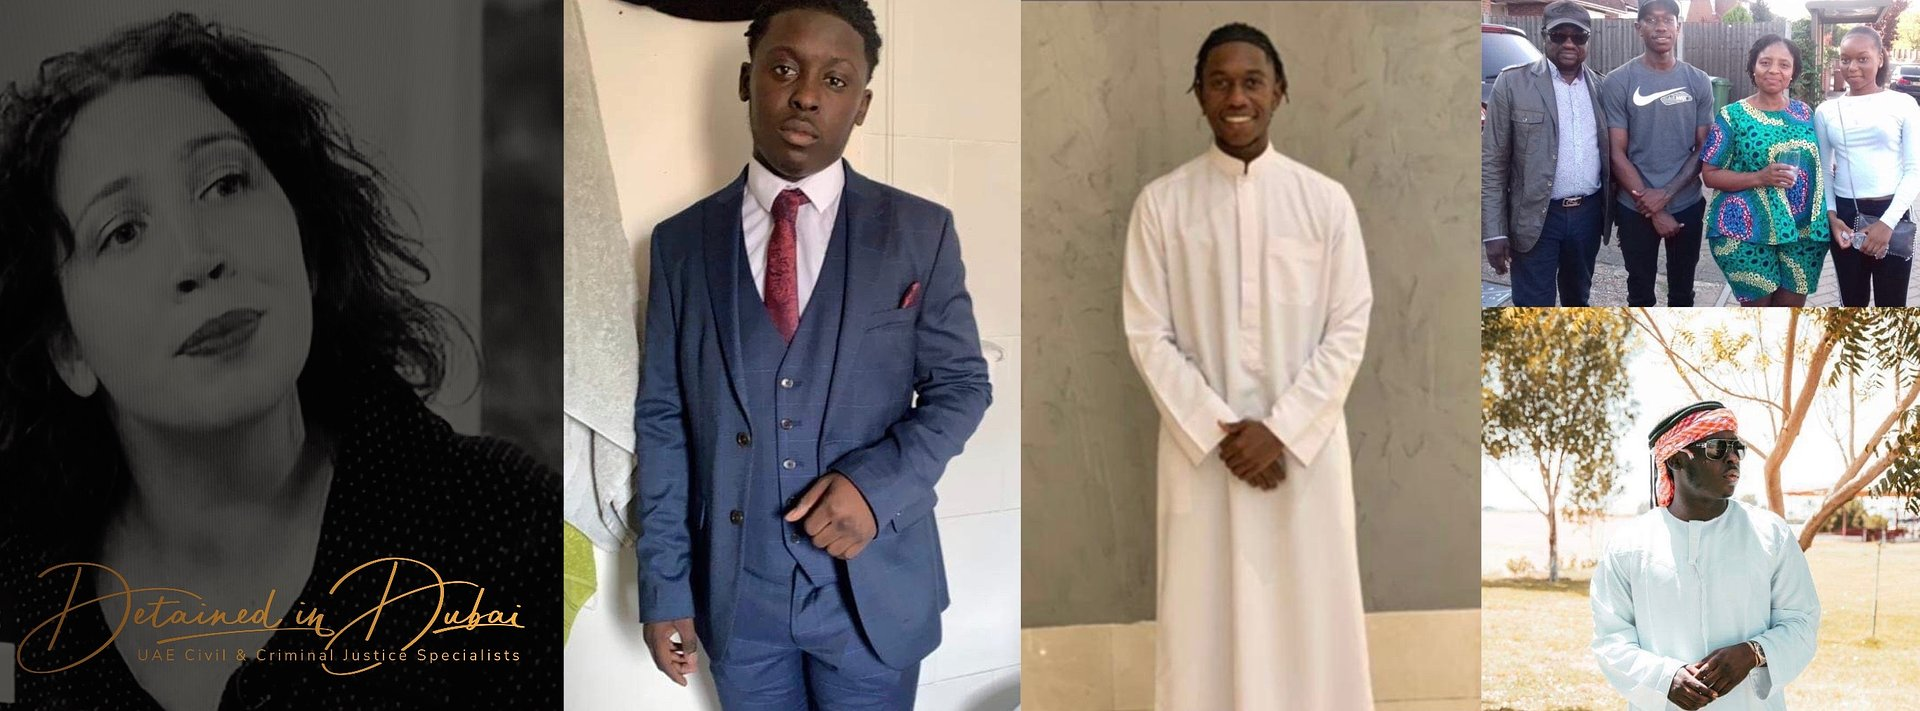 """""""You will go to prison if you don't pay"""" - Two economics students face 1.5 years in Dubai jail after falling victim to tourist rental car extortion scam"""